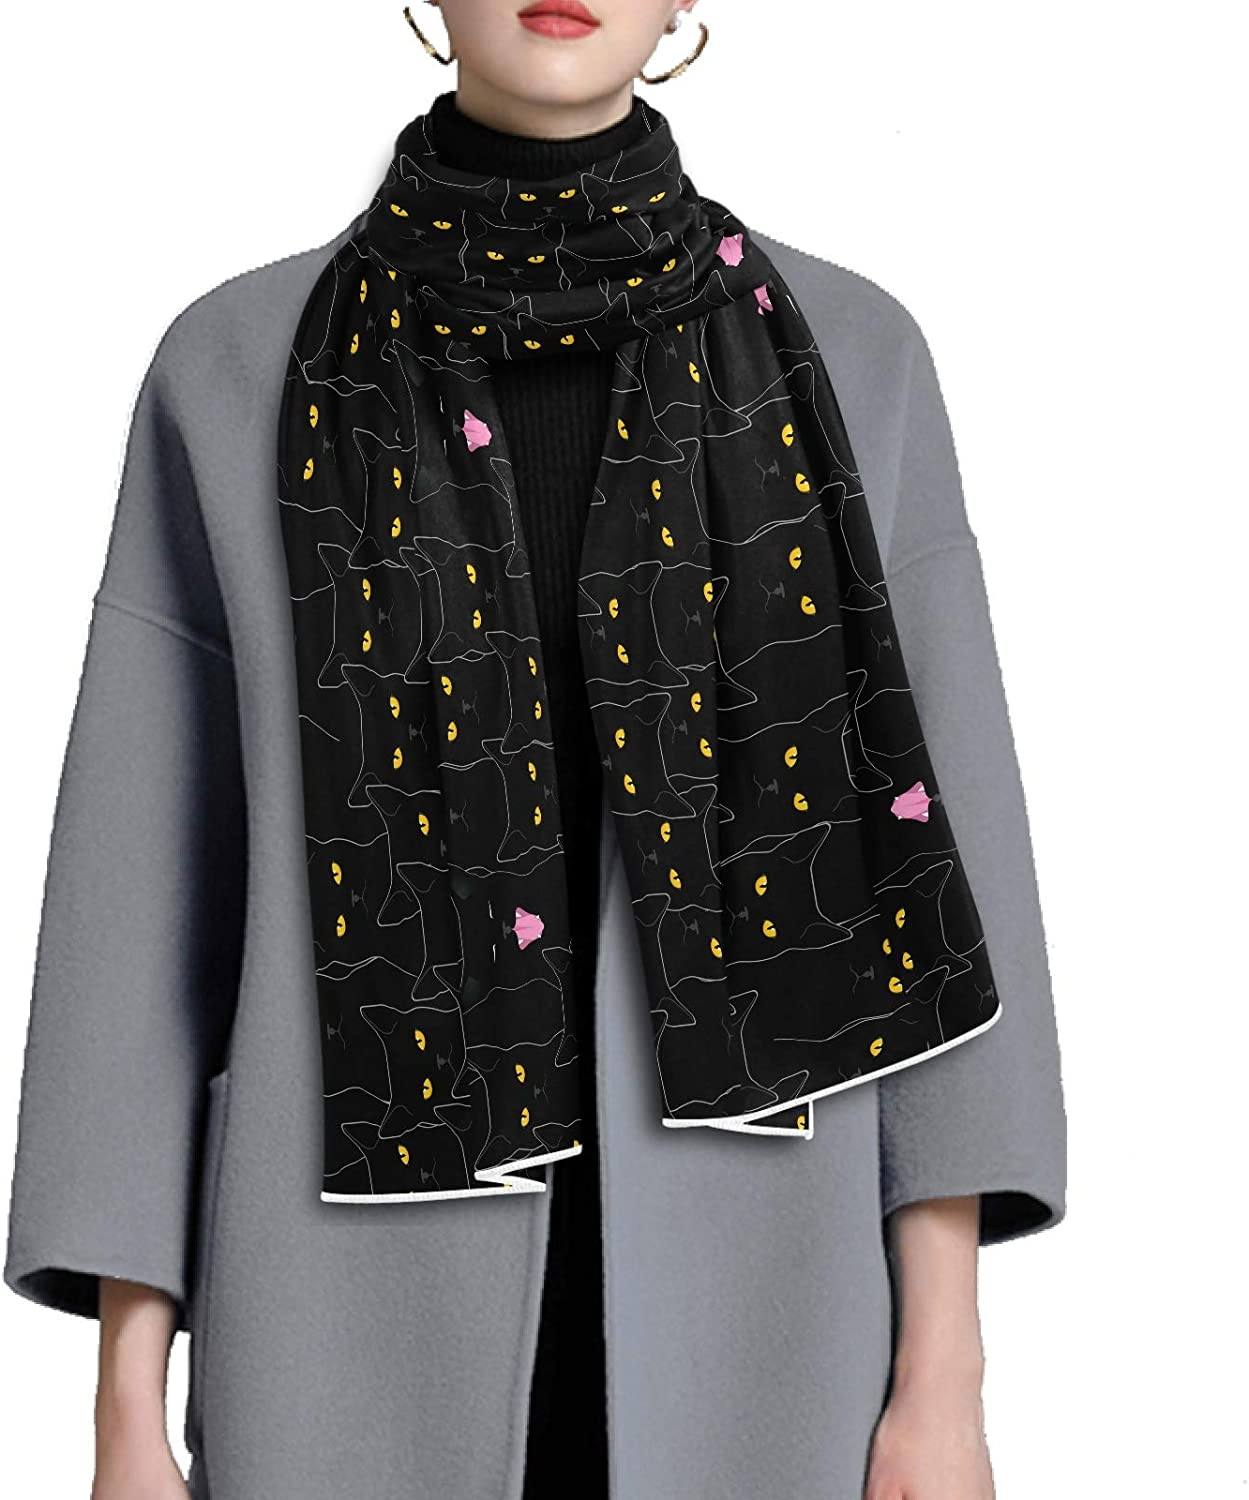 Scarf for Women and Men Cute Black Cats Blanket Shawl Scarves Wraps Thick Soft Winter Oversized Scarf Lightweight